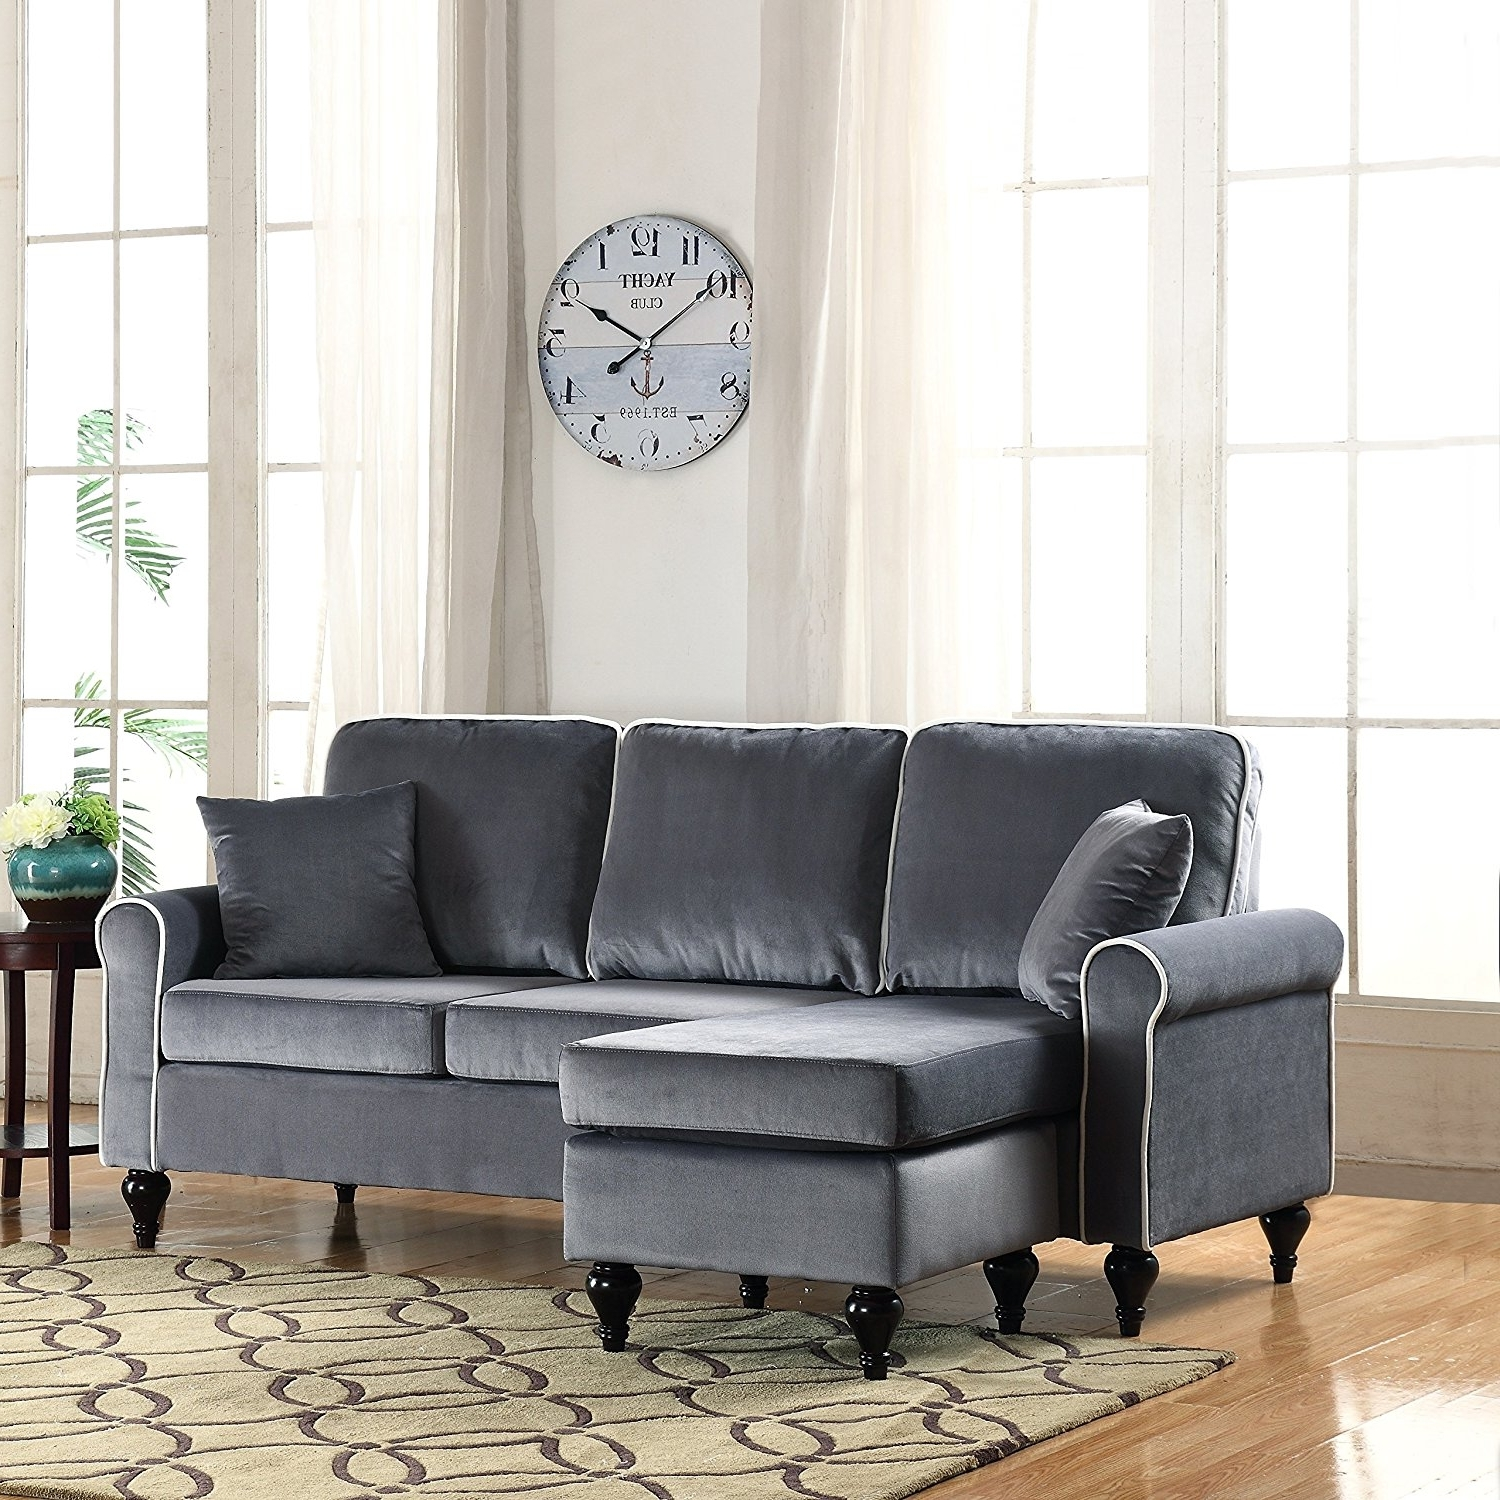 Sofas With Reversible Chaise Lounge Regarding Best And Newest Amazon: Classic And Traditional Small Space Velvet Sectional (View 10 of 15)